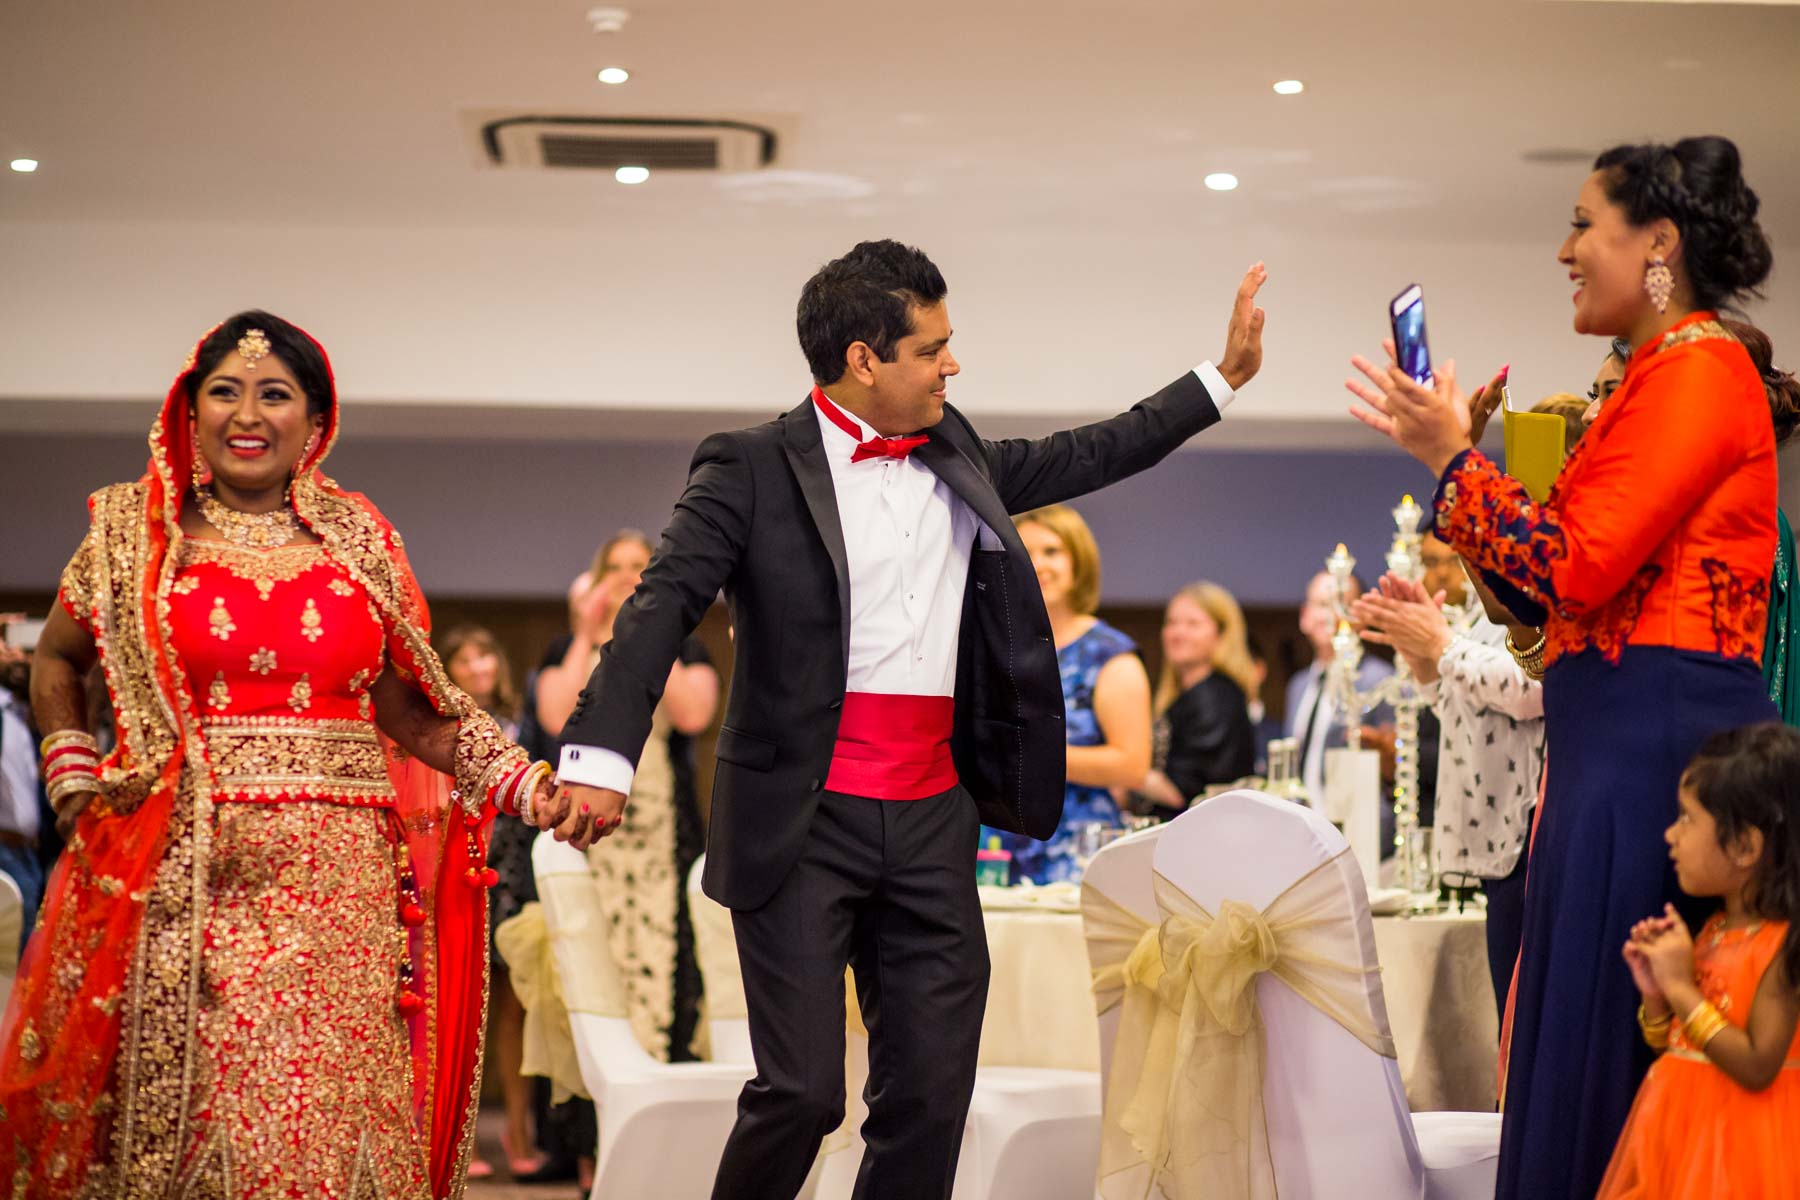 Asian wedding photographer Surrey, Oatlands Park Hotel, Weybridge